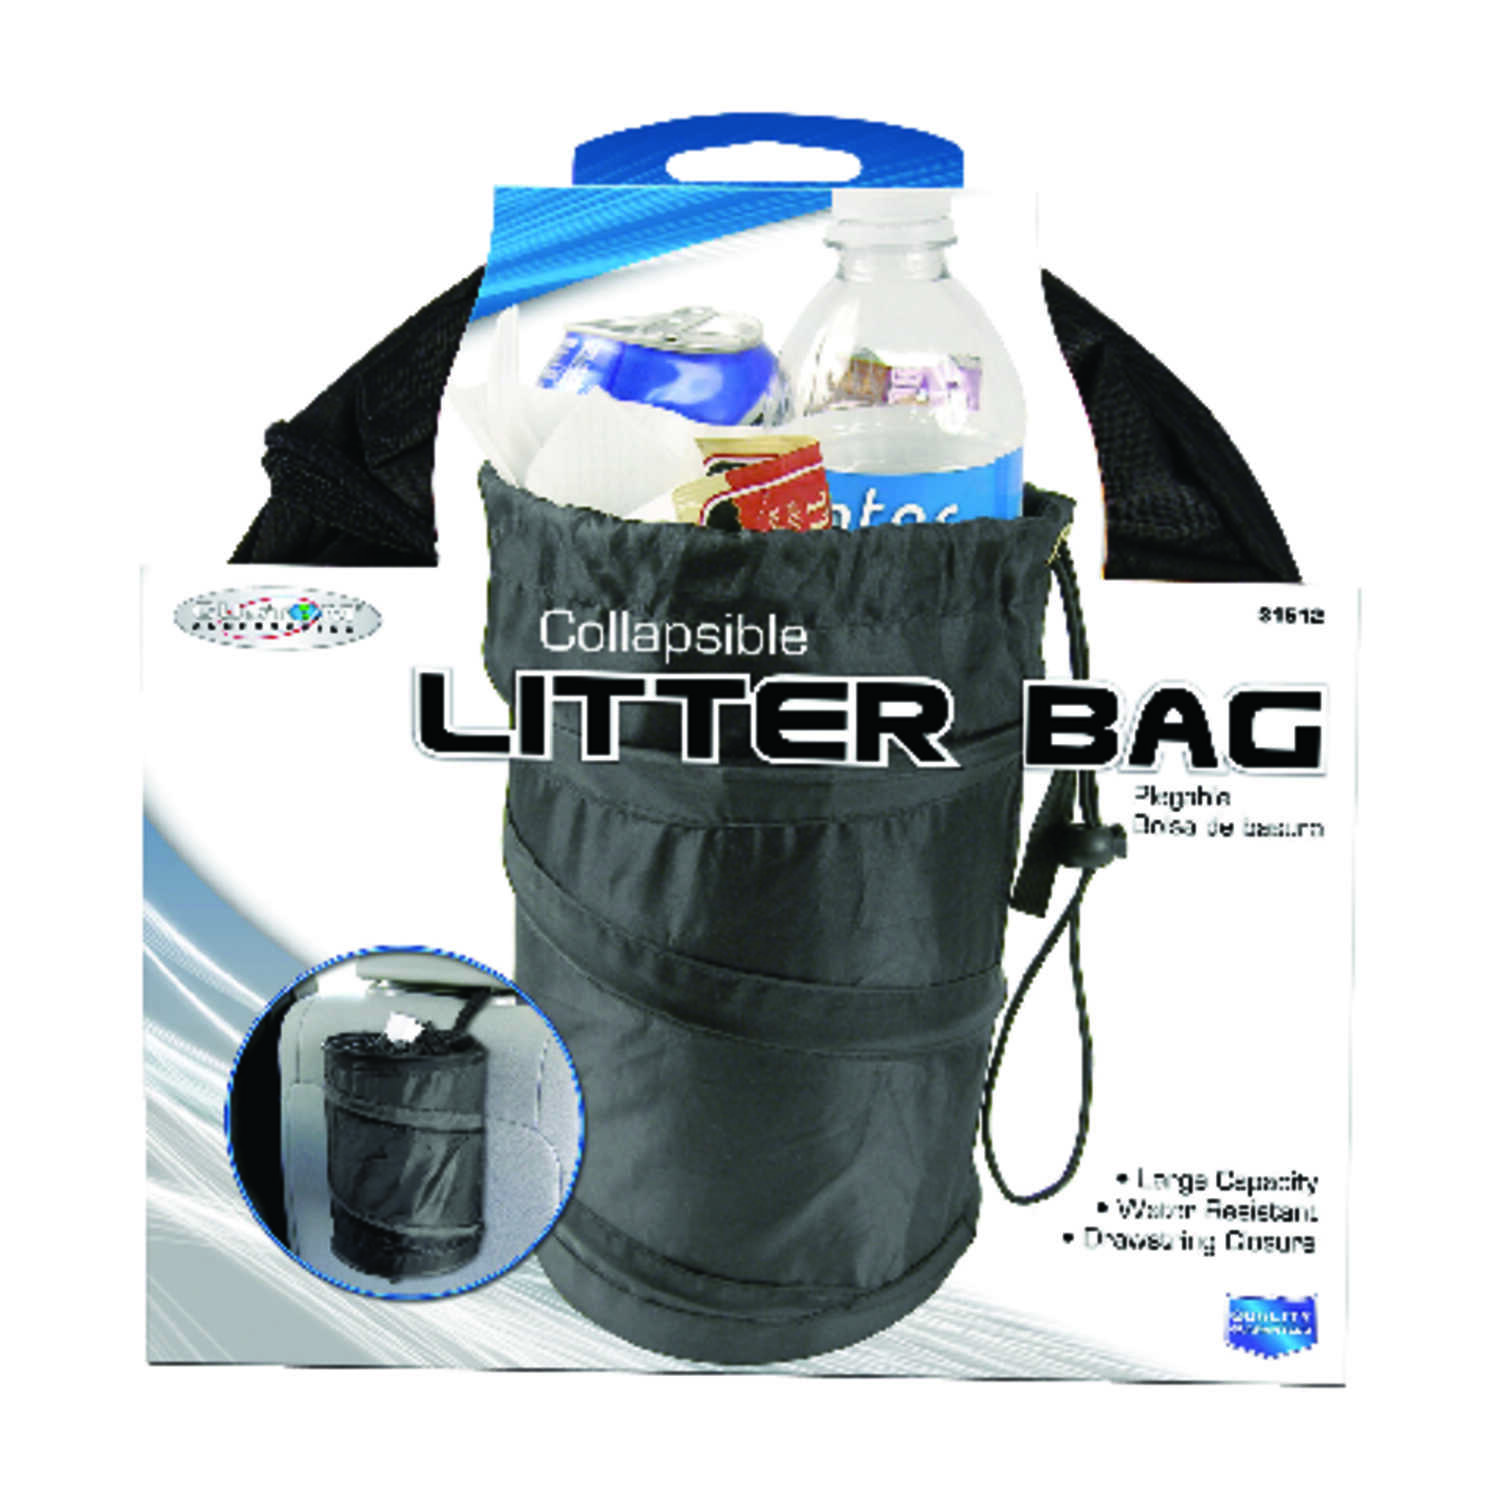 Custom Accessories  Black  Collapsible Trash-It Bag  1 pk Universally fits all vehicles